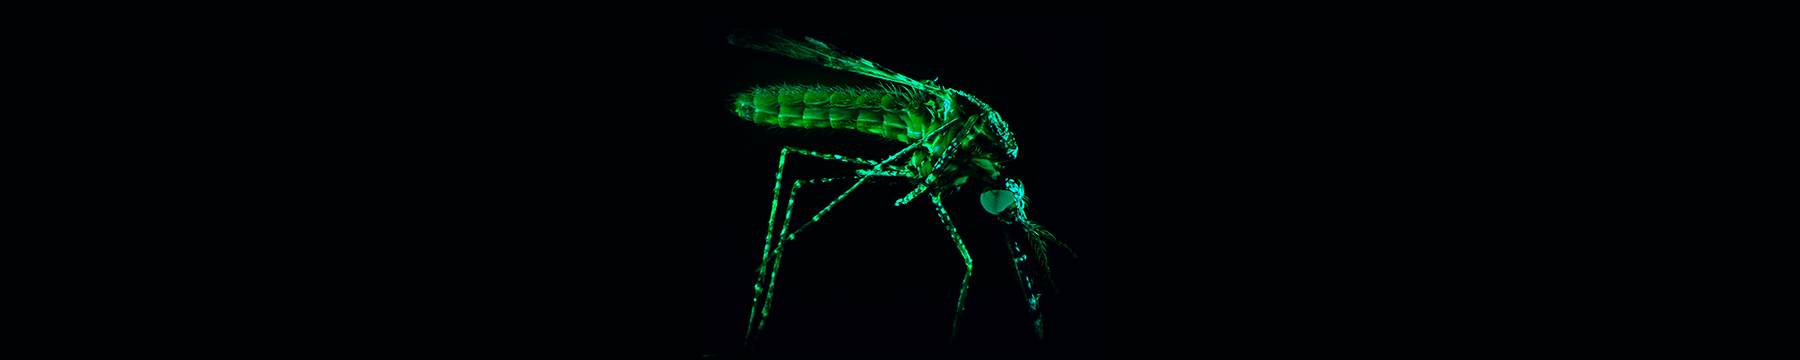 Green mosquito on black background